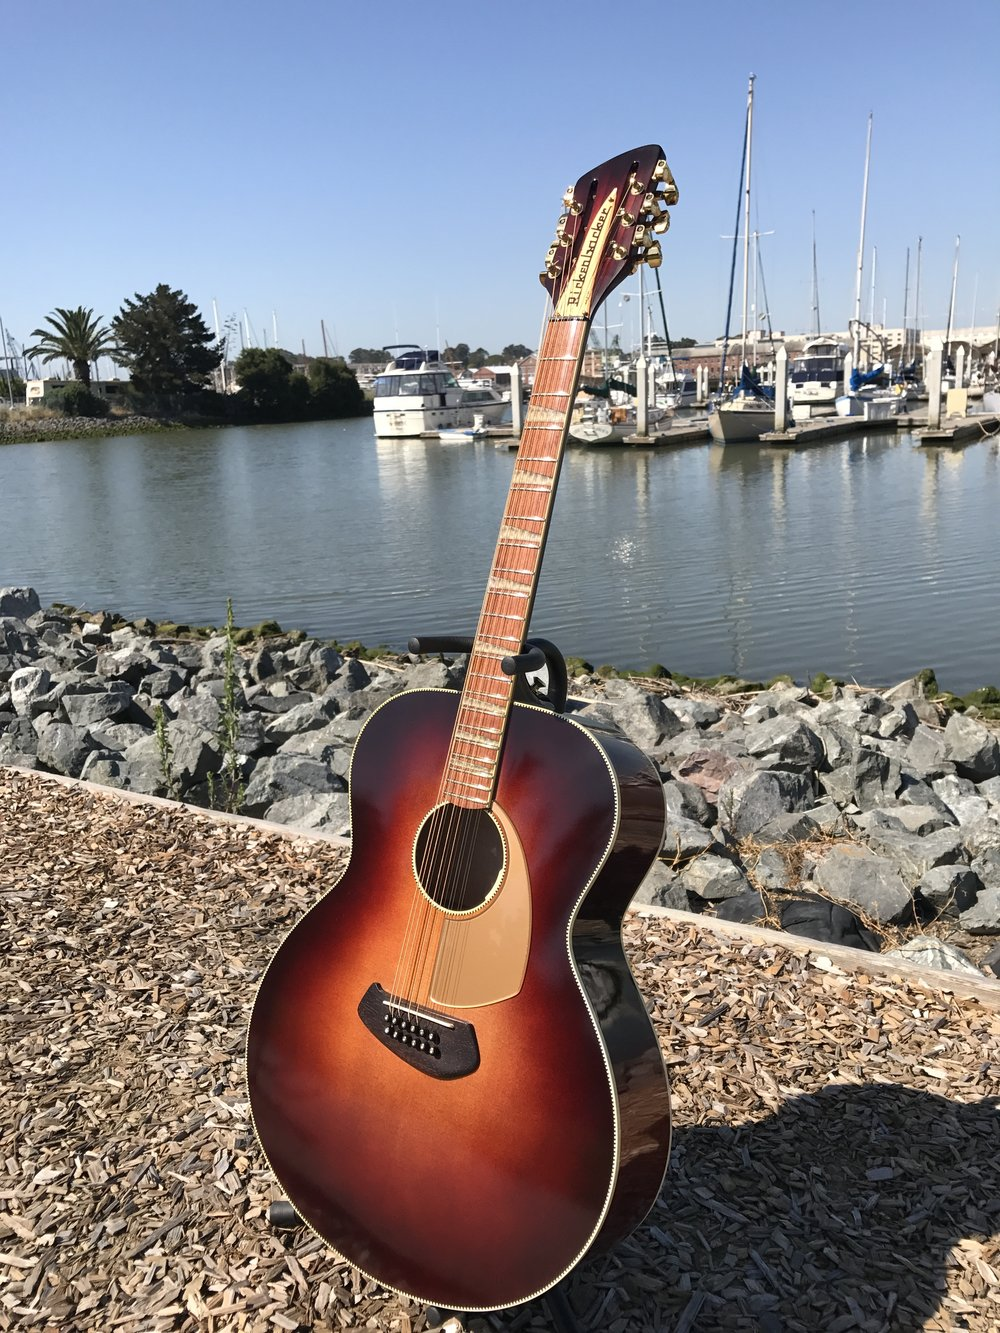 A MIX OF TRADITIONAL AND NEW THINKING IN THIS ACOUSTIC GUITAR